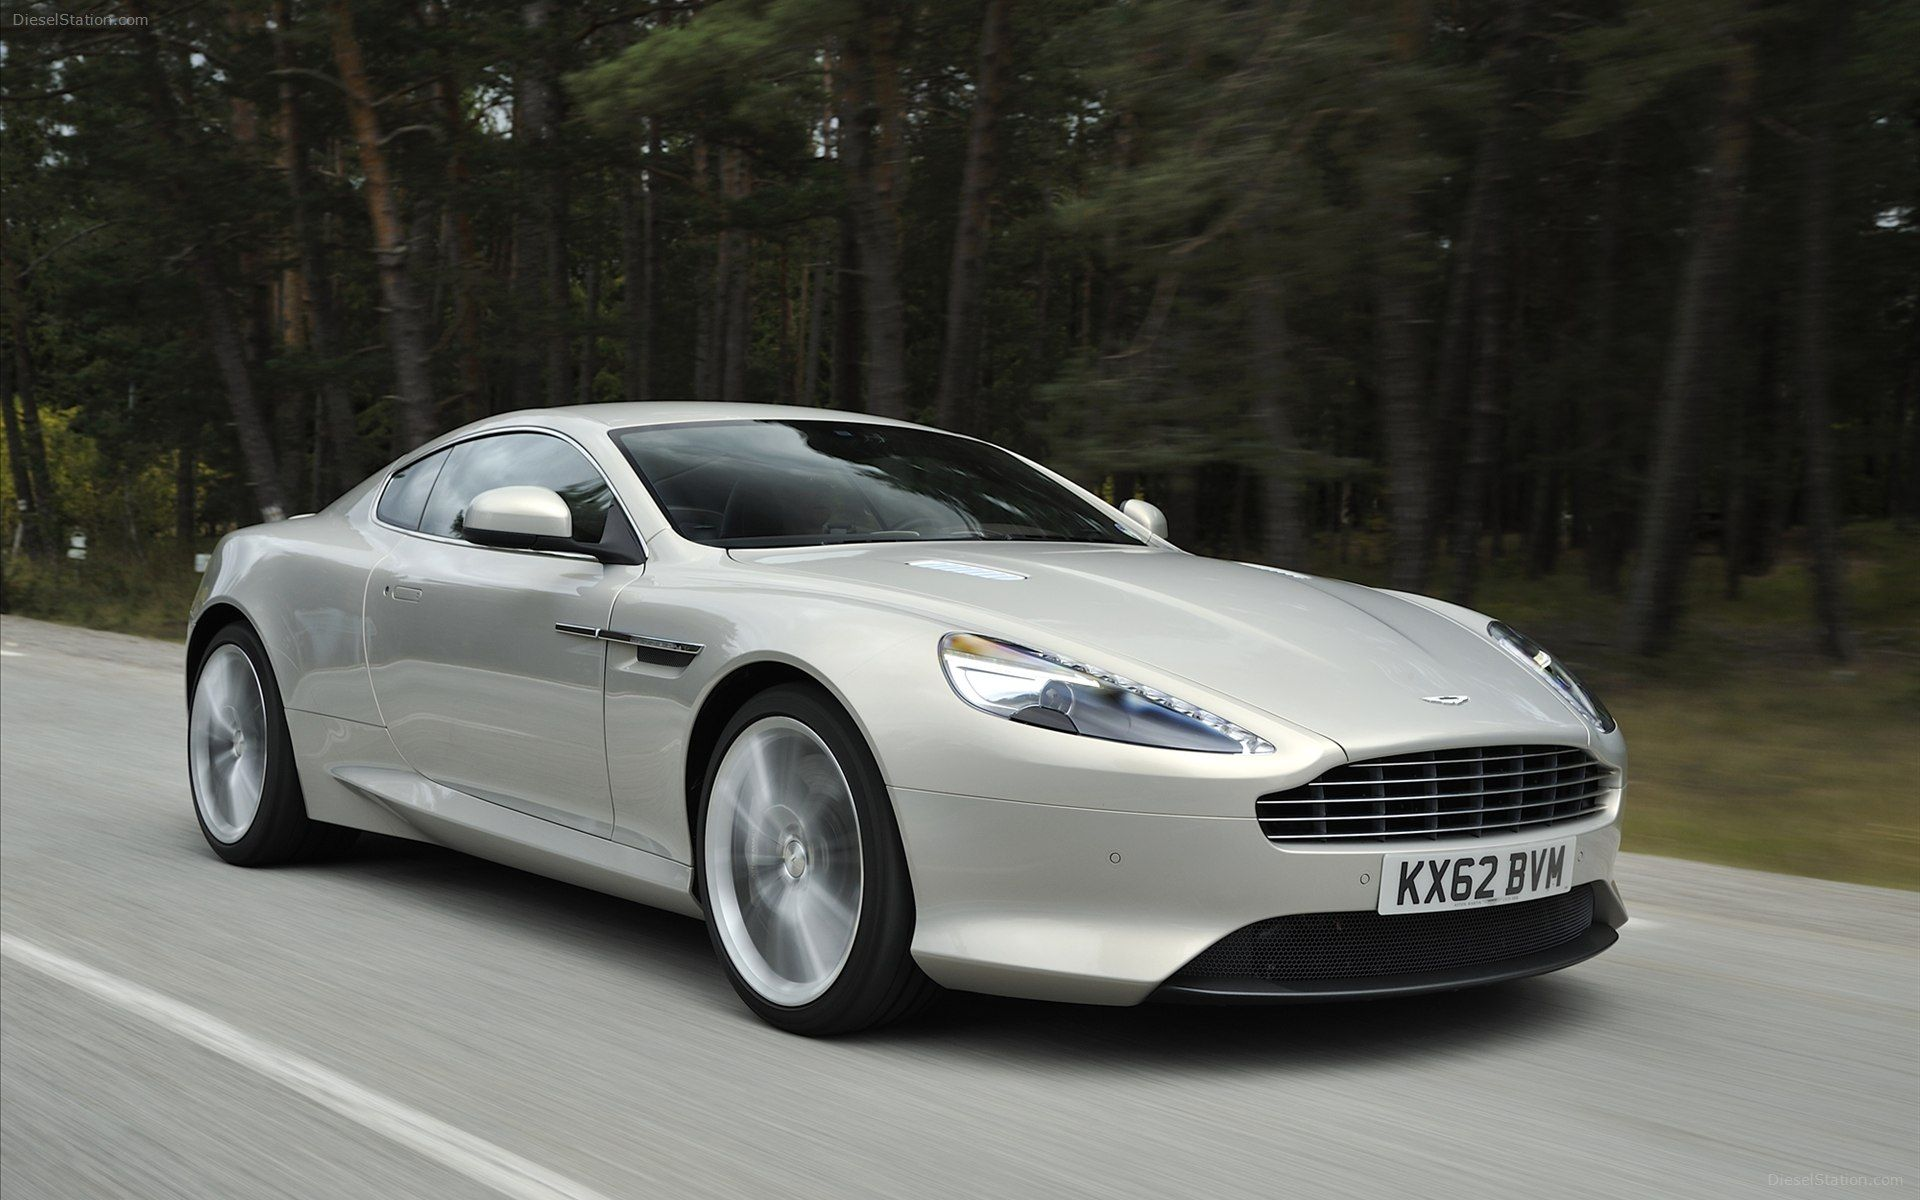 The 2013 Aston Martin DB9 a pelling Sports GT at the heart of